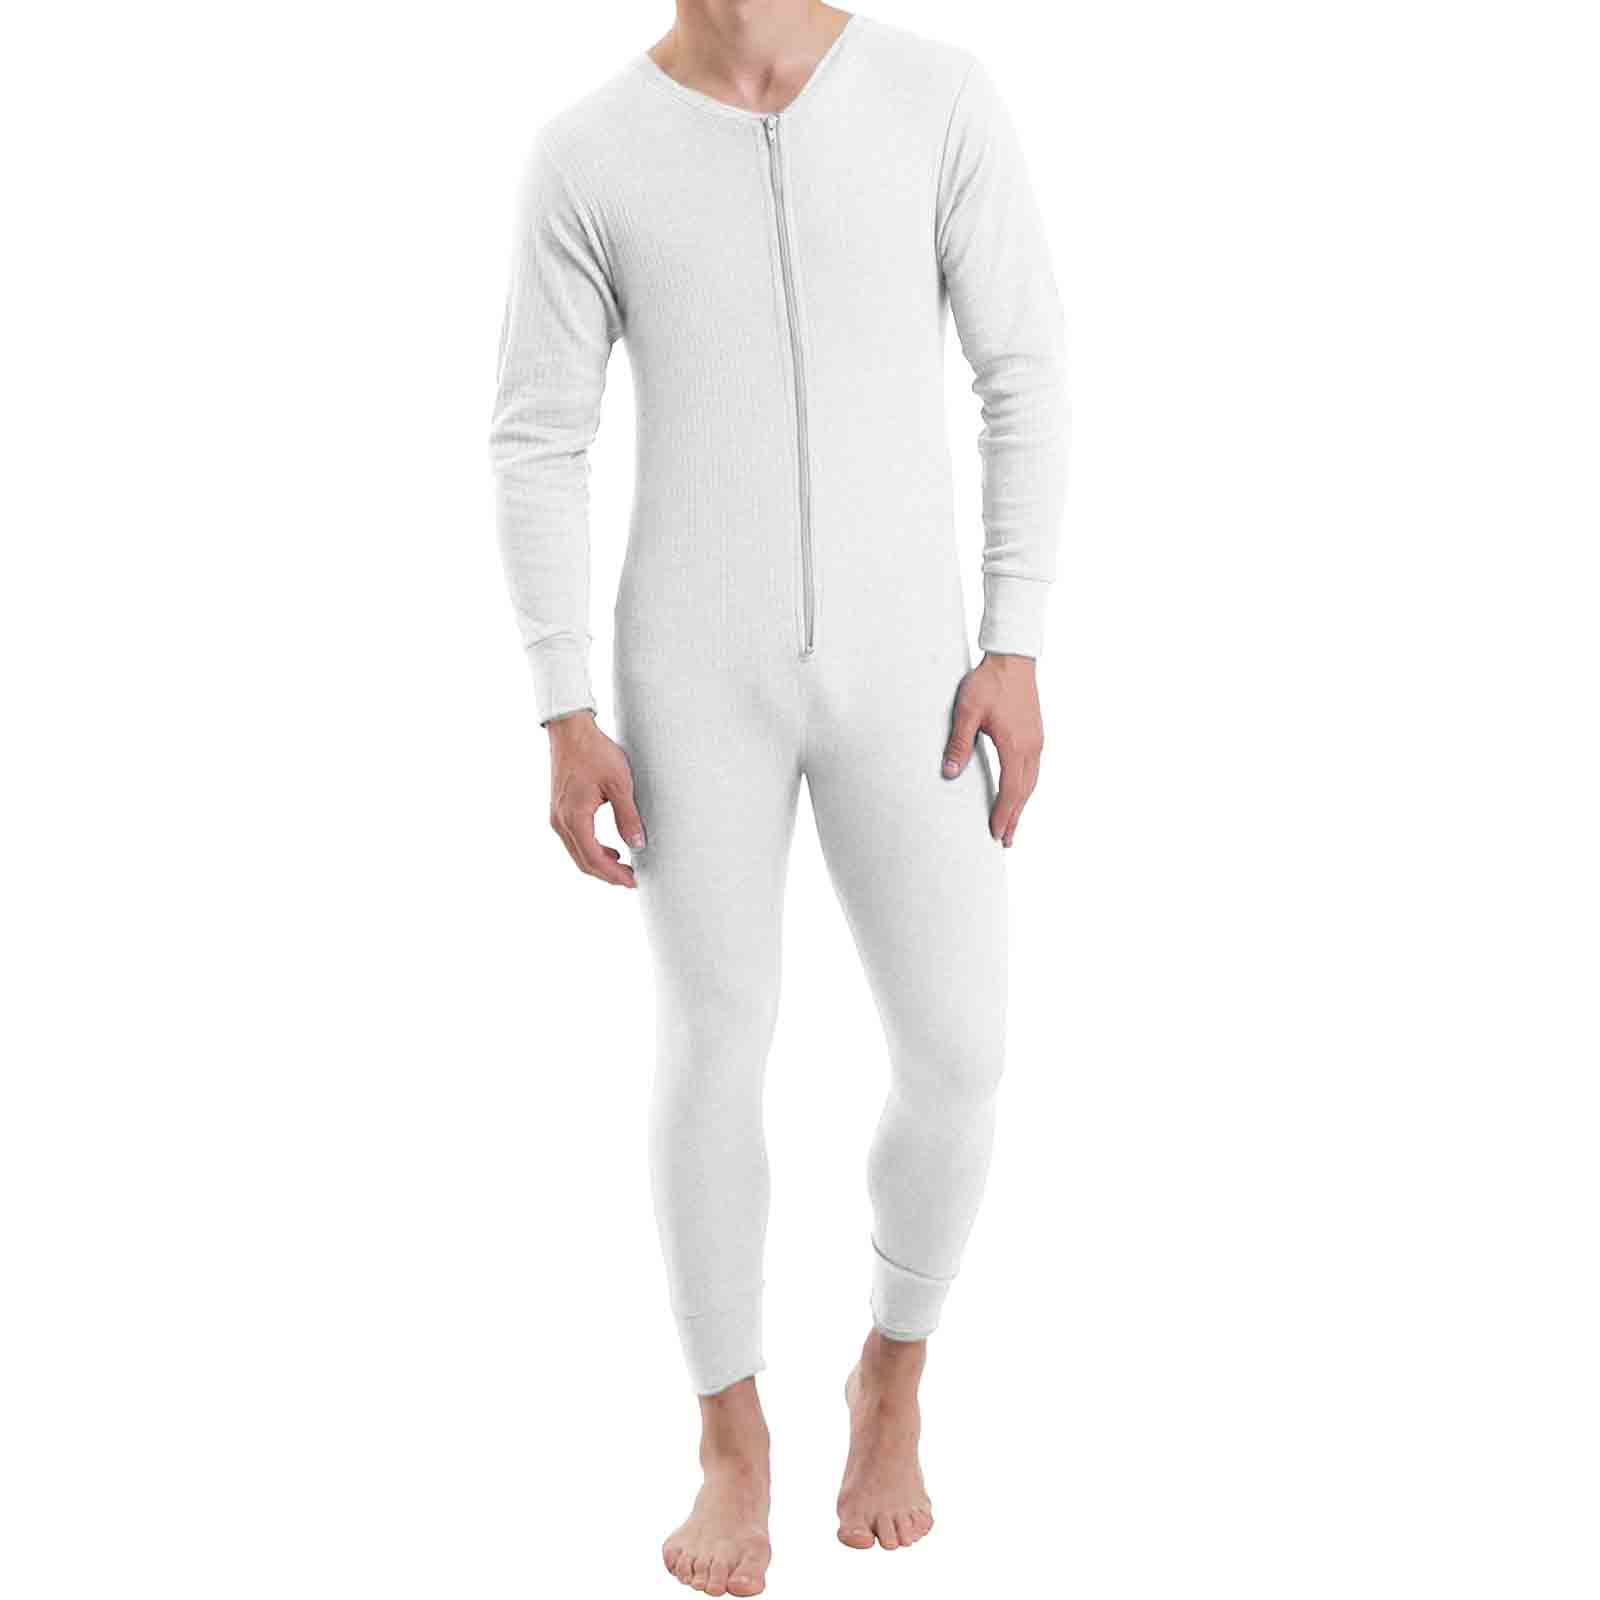 Men's Footie Pajamas. invalid category id. Men's Footie Pajamas. Showing 8 of 8 results that match your query. Search Product Result. Product - Turtles Men's License Sleep Pant. Wo men s 51 Inch Waffle Weave Spa Bathrobe, % Cotton With Long Sleeves. This is a popular terry bathrobe for men and wo men.